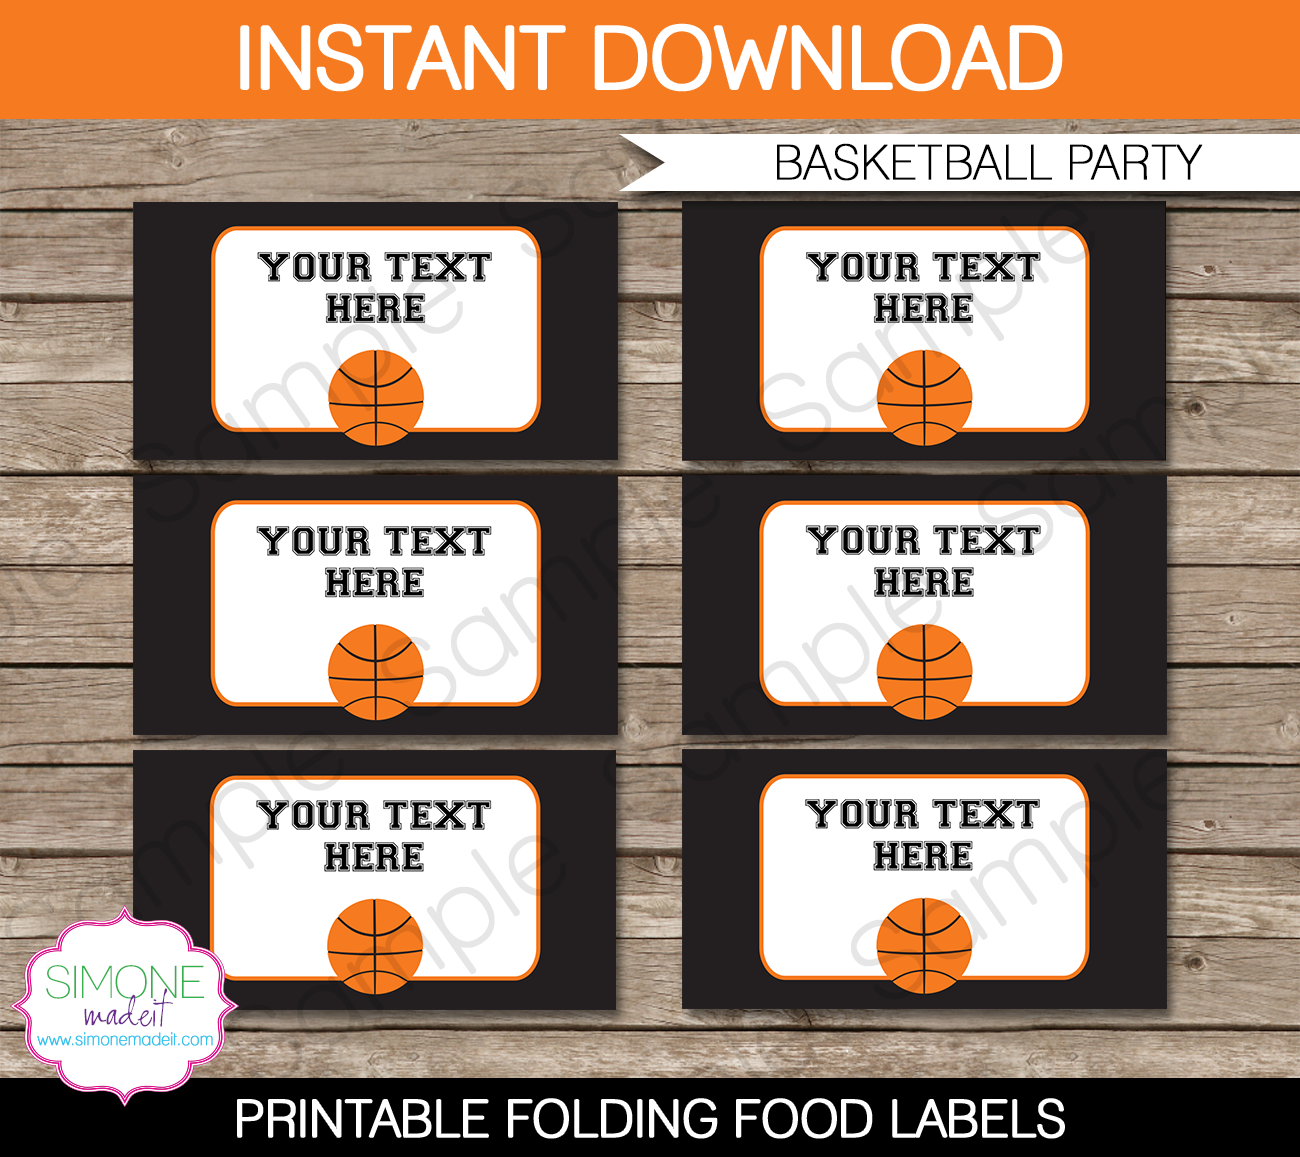 Basketball Party Food Labels Template